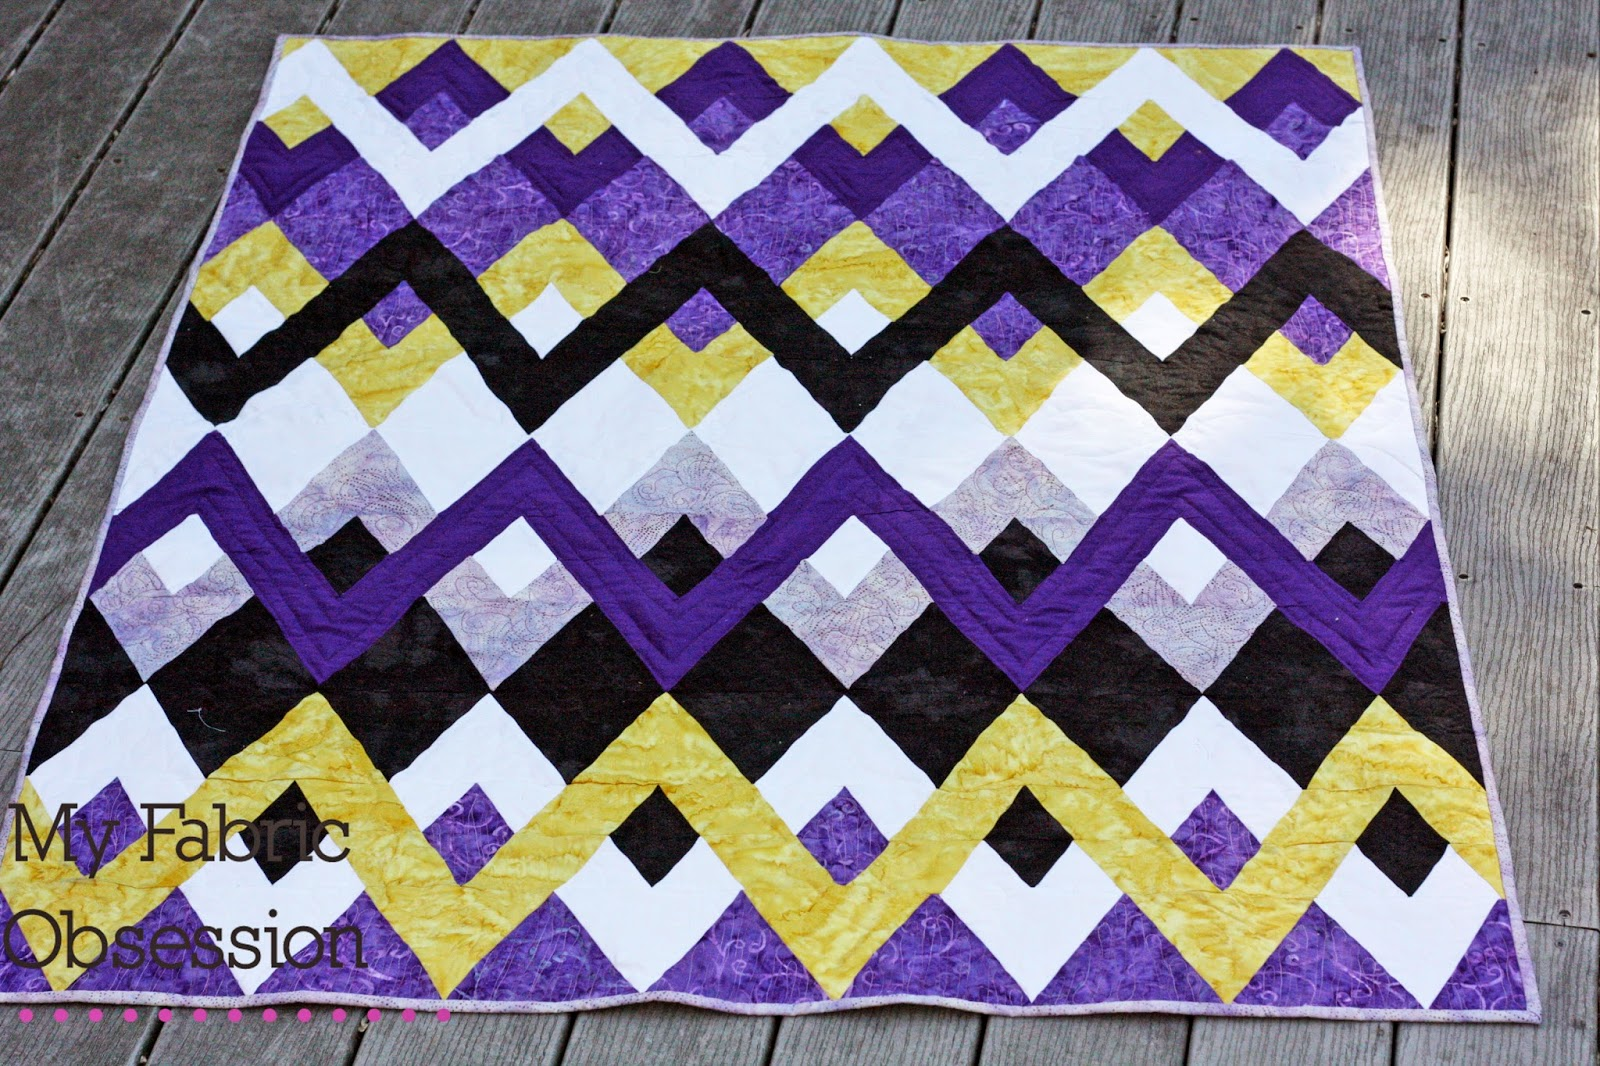 My Fabric Obsession The Zig Zag Quilt